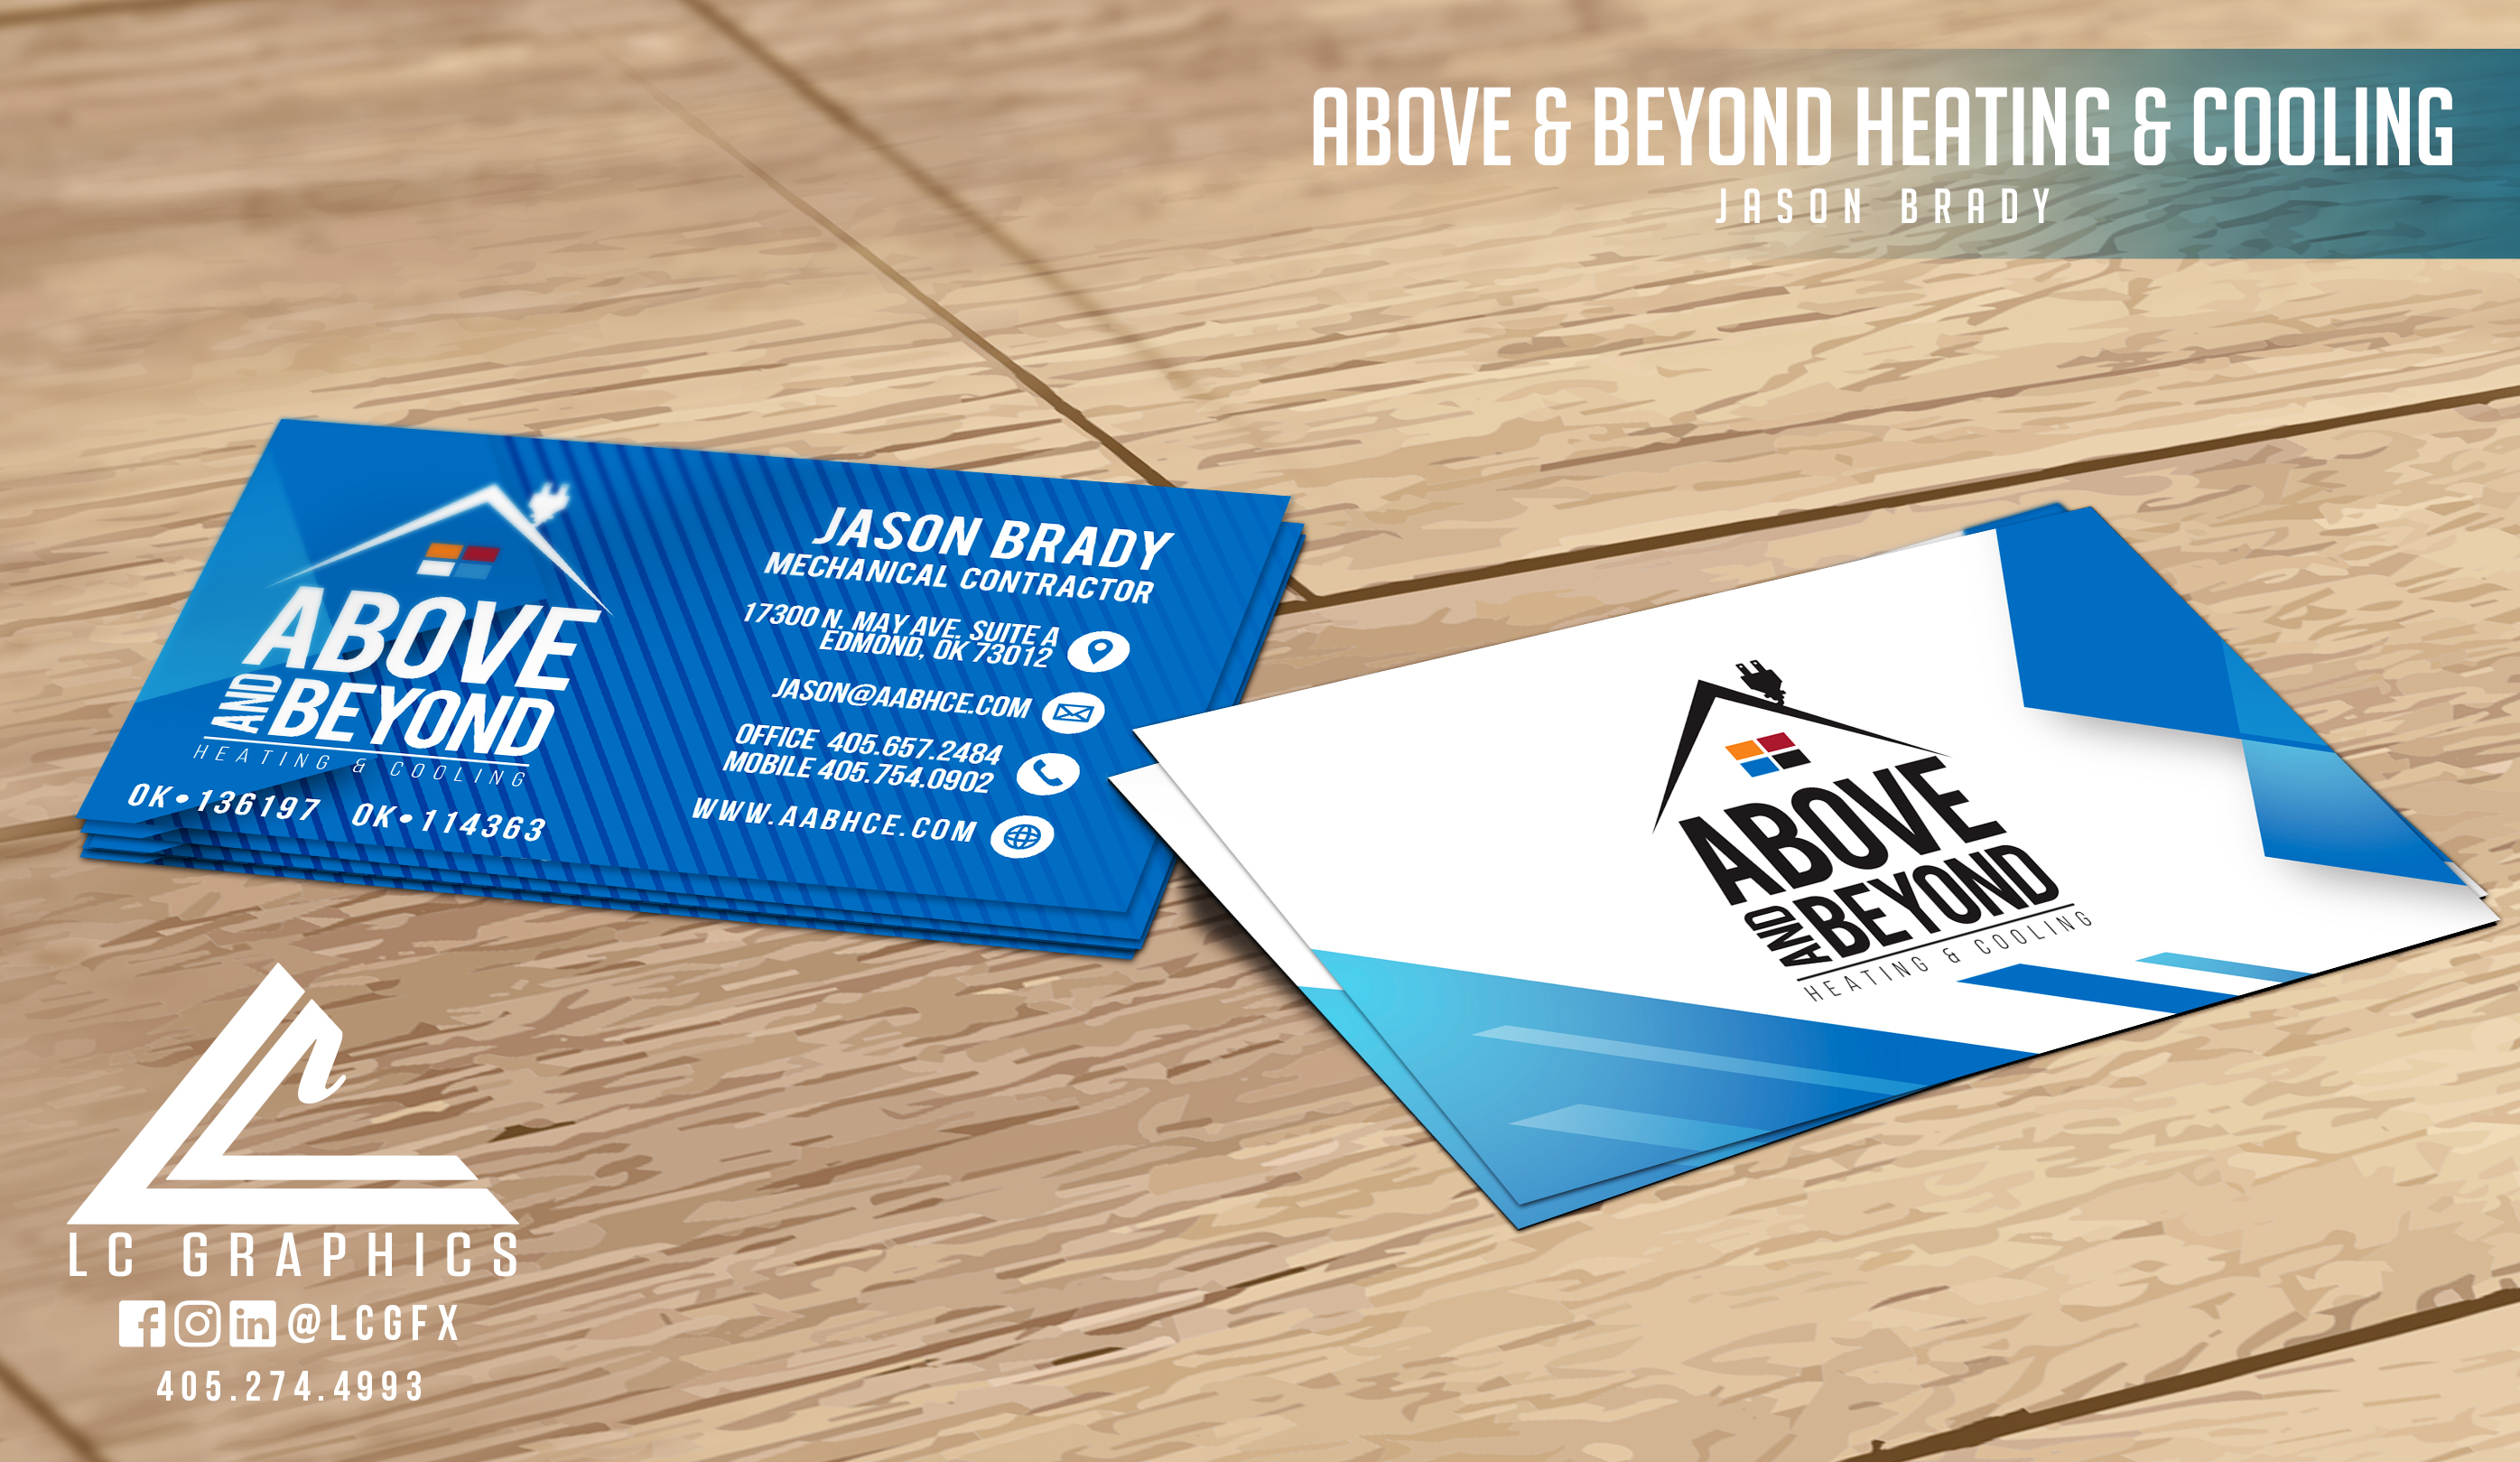 Above & Beyond HVAC Card Mockup